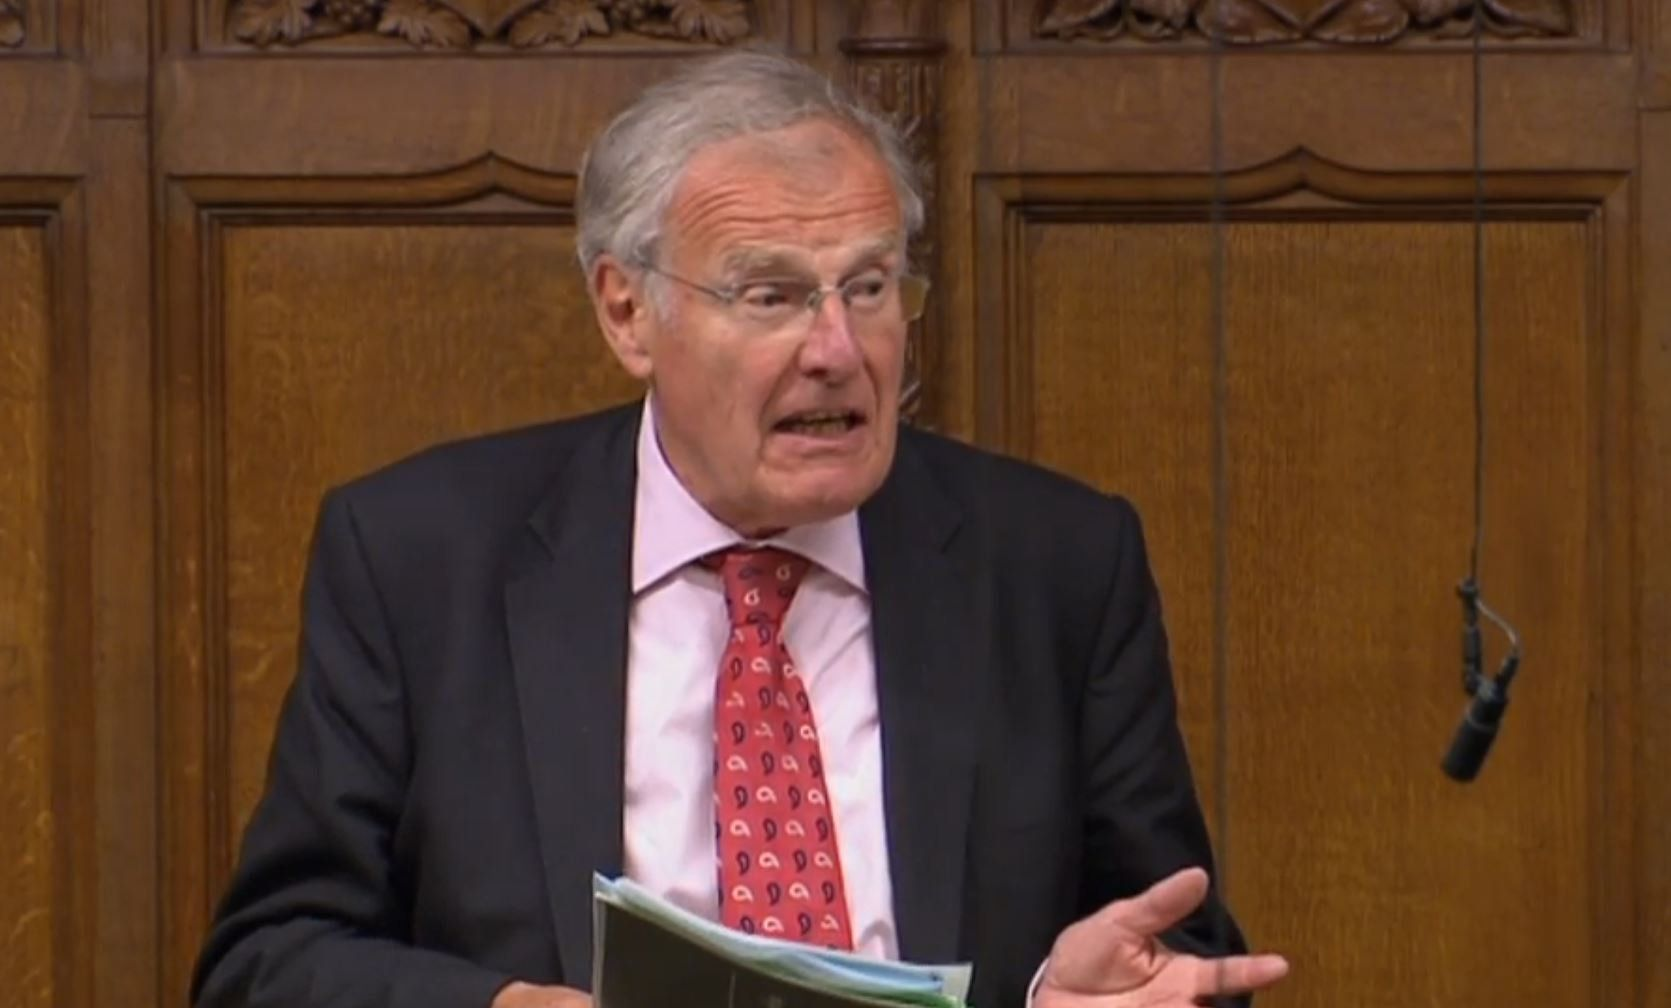 Toy Dinosaurs Left Outside Christopher Chope's Office After He Blocked Anti-FGM